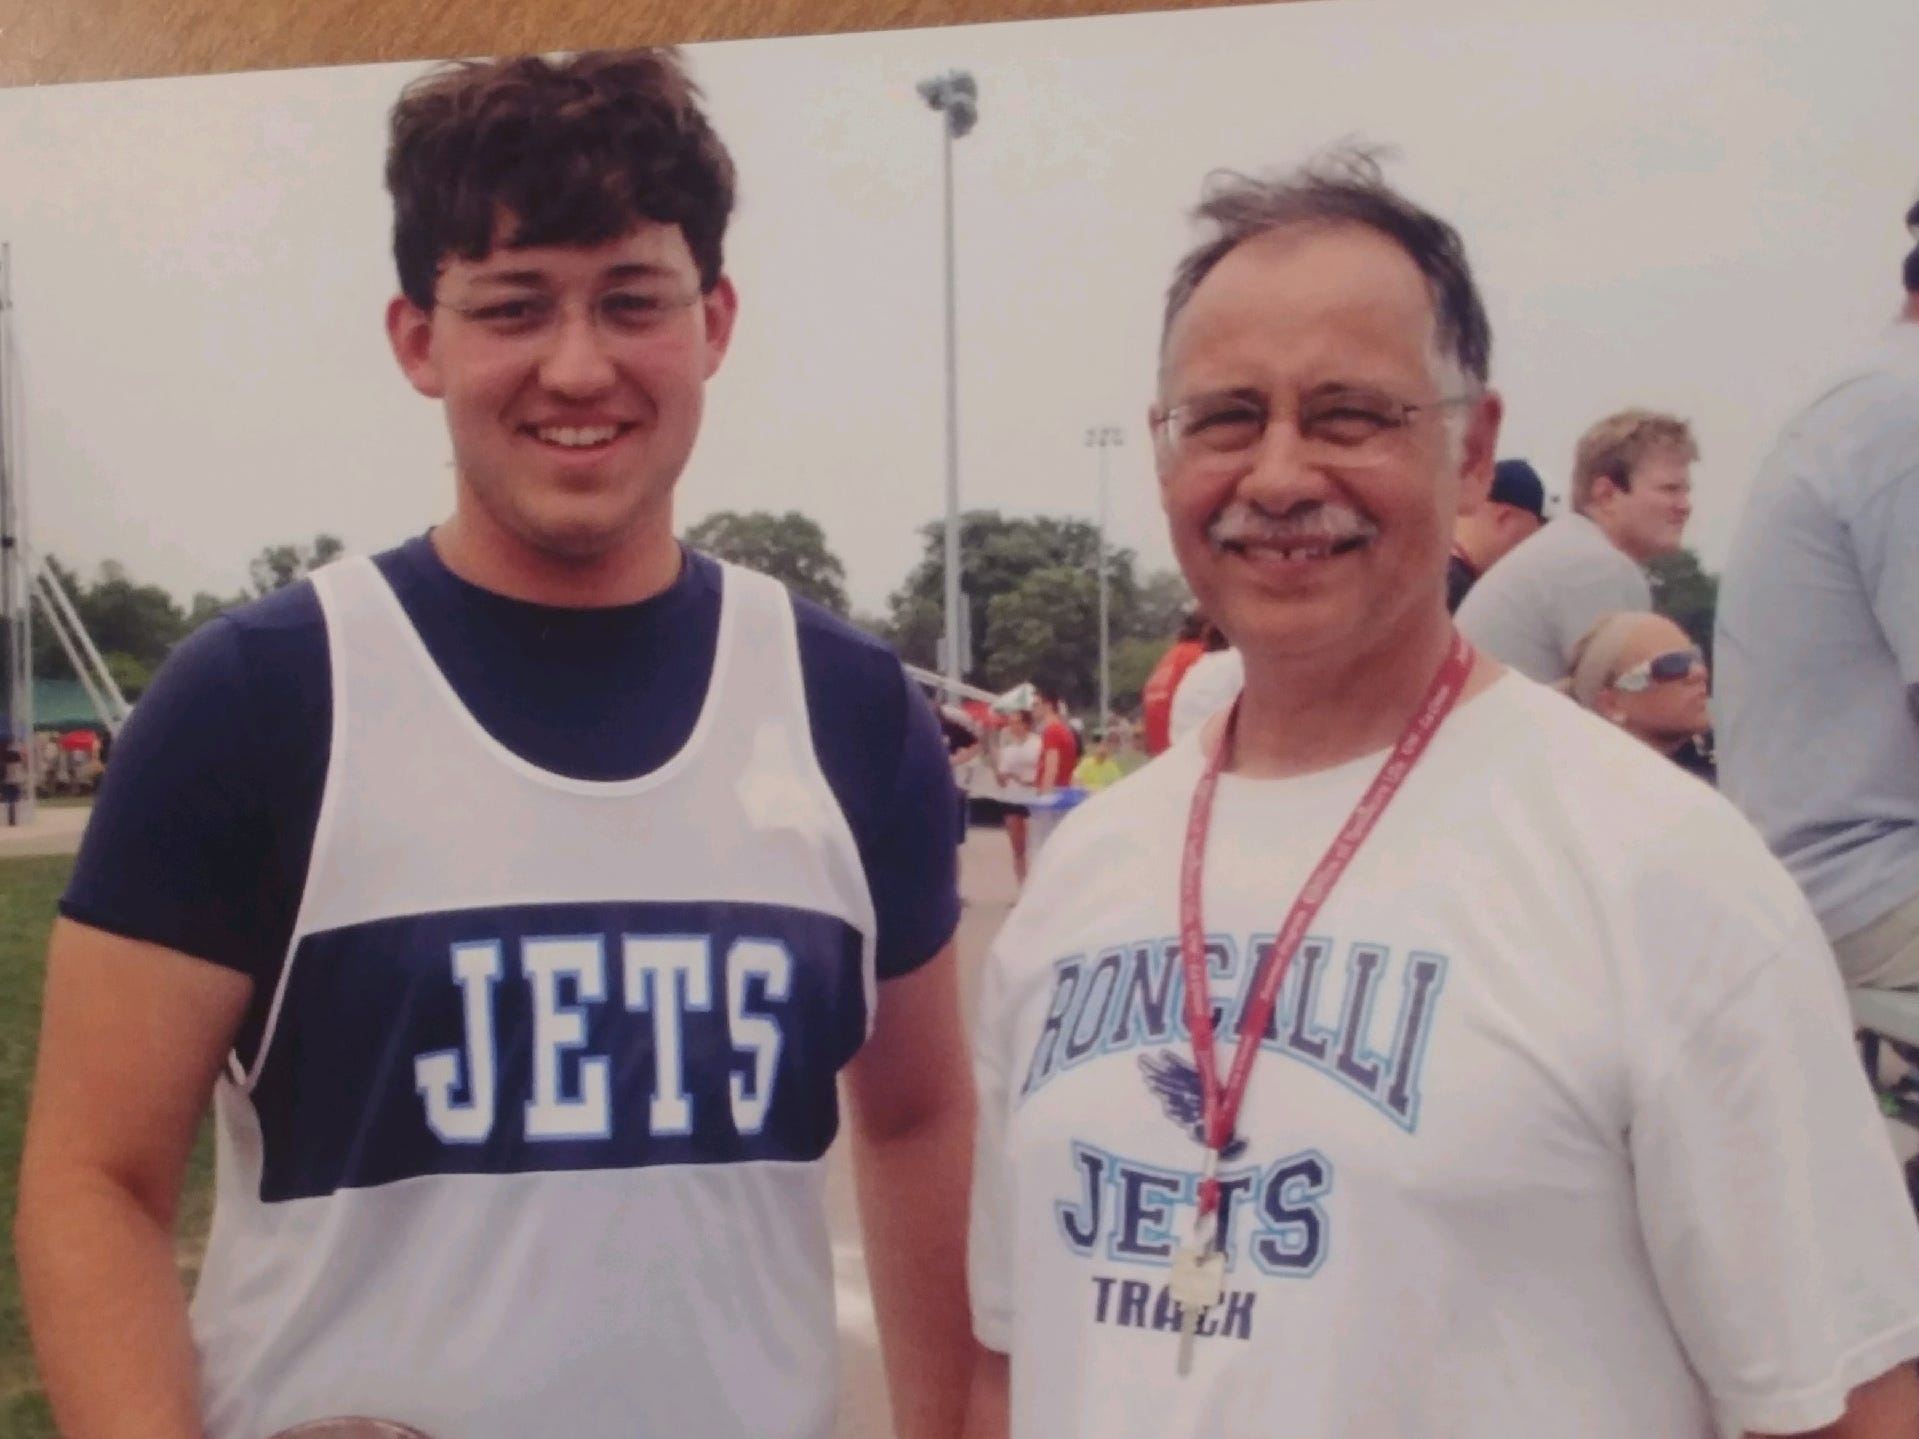 Chris Klein poses with Roncalli track and field coach Ray Baranczyk.